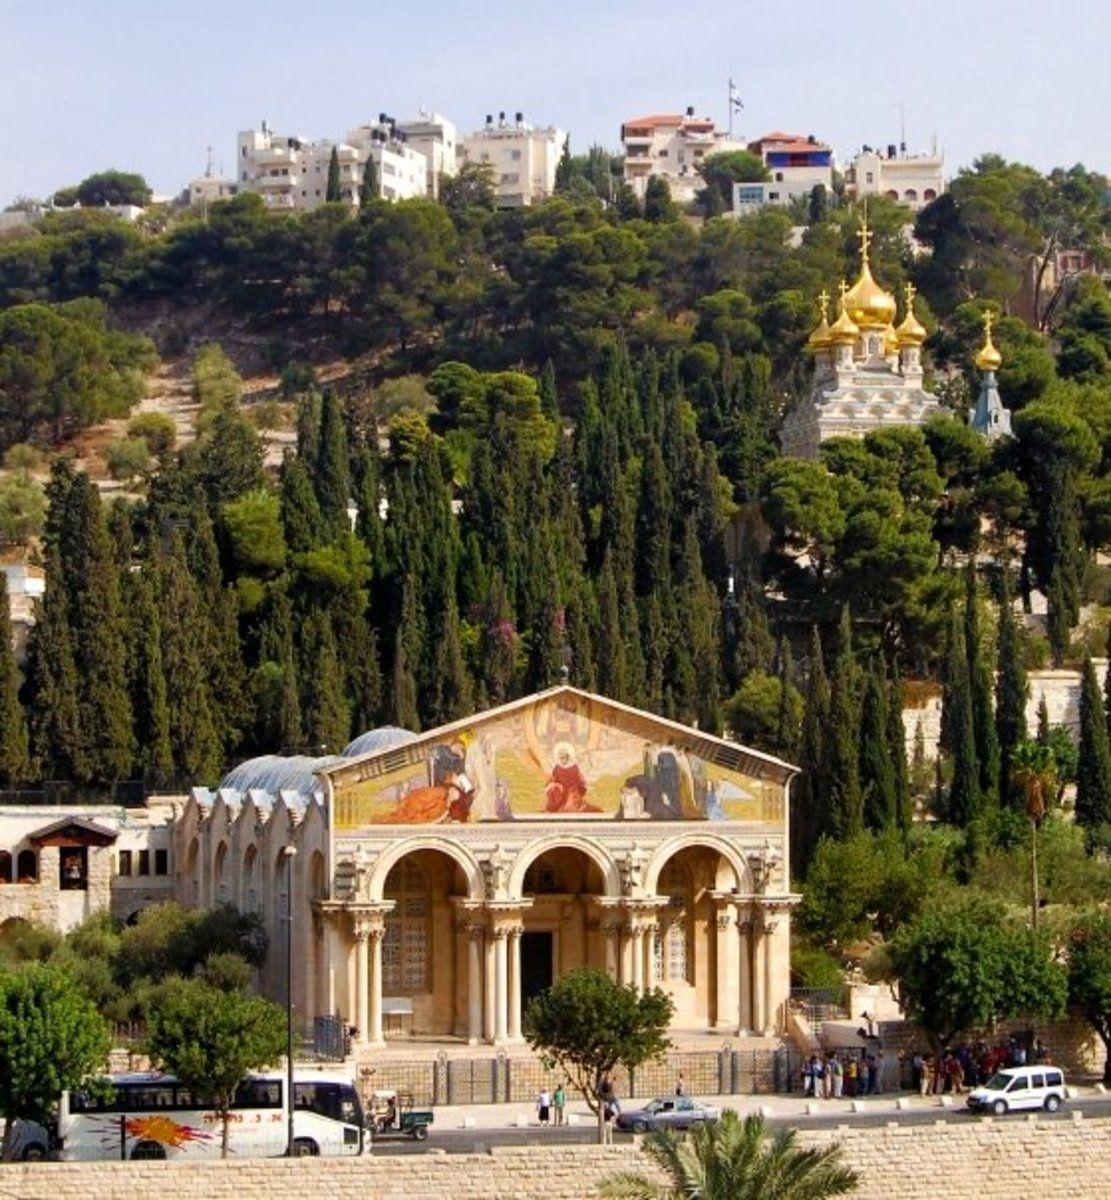 MOUNT OF OLIVES WITH CHURCH OF ALL NATIONS IN THE FOREGROUND